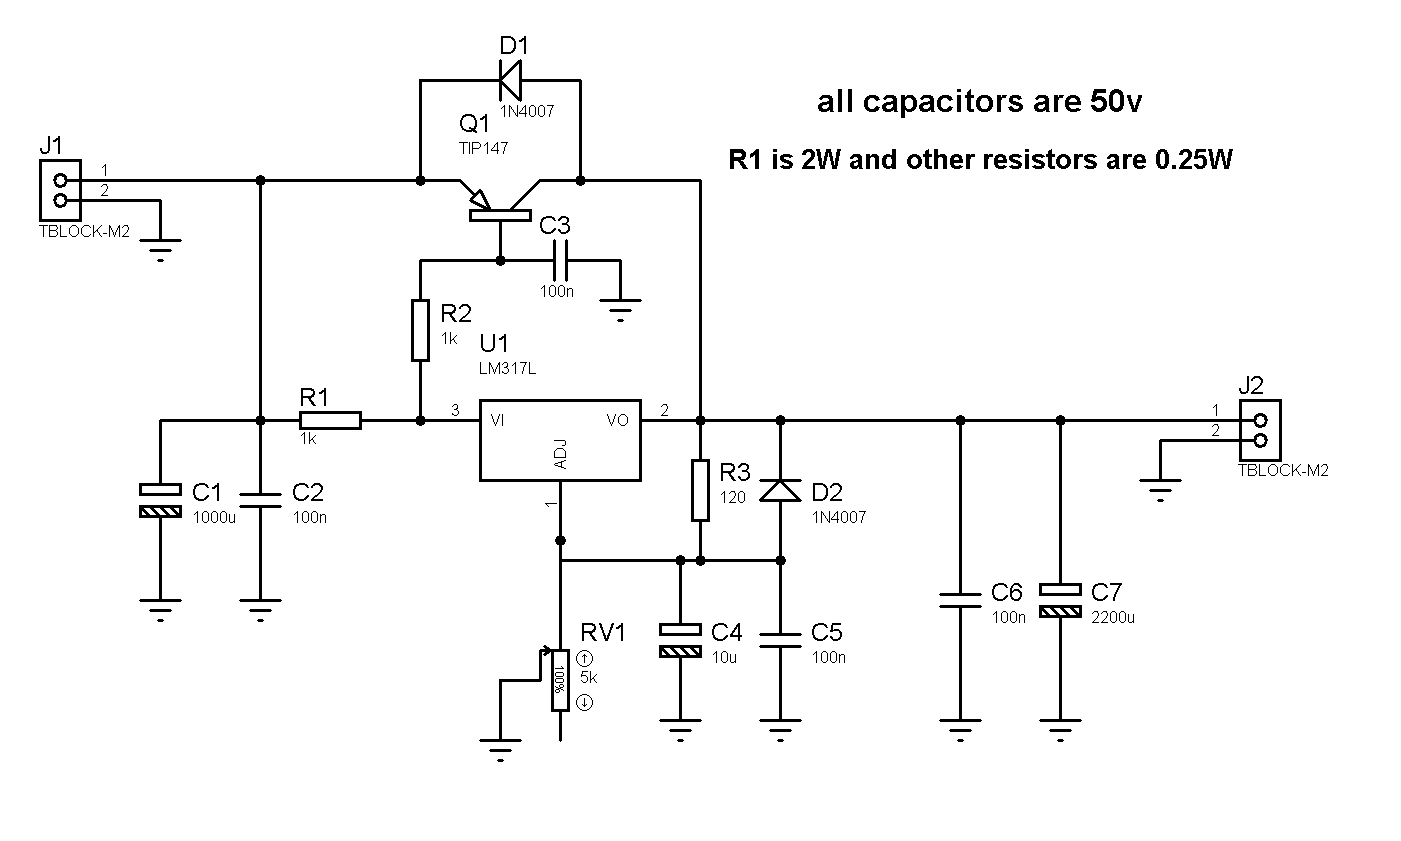 Aid V Px Test A Voltage Regulator Step in addition V A Adjustable Power Supply With Lm as well Thyristor Symbol And Circuit in addition Kawifd Dwirediagram also Recregsignalwires X. on voltage regulator rectifier wiring diagram